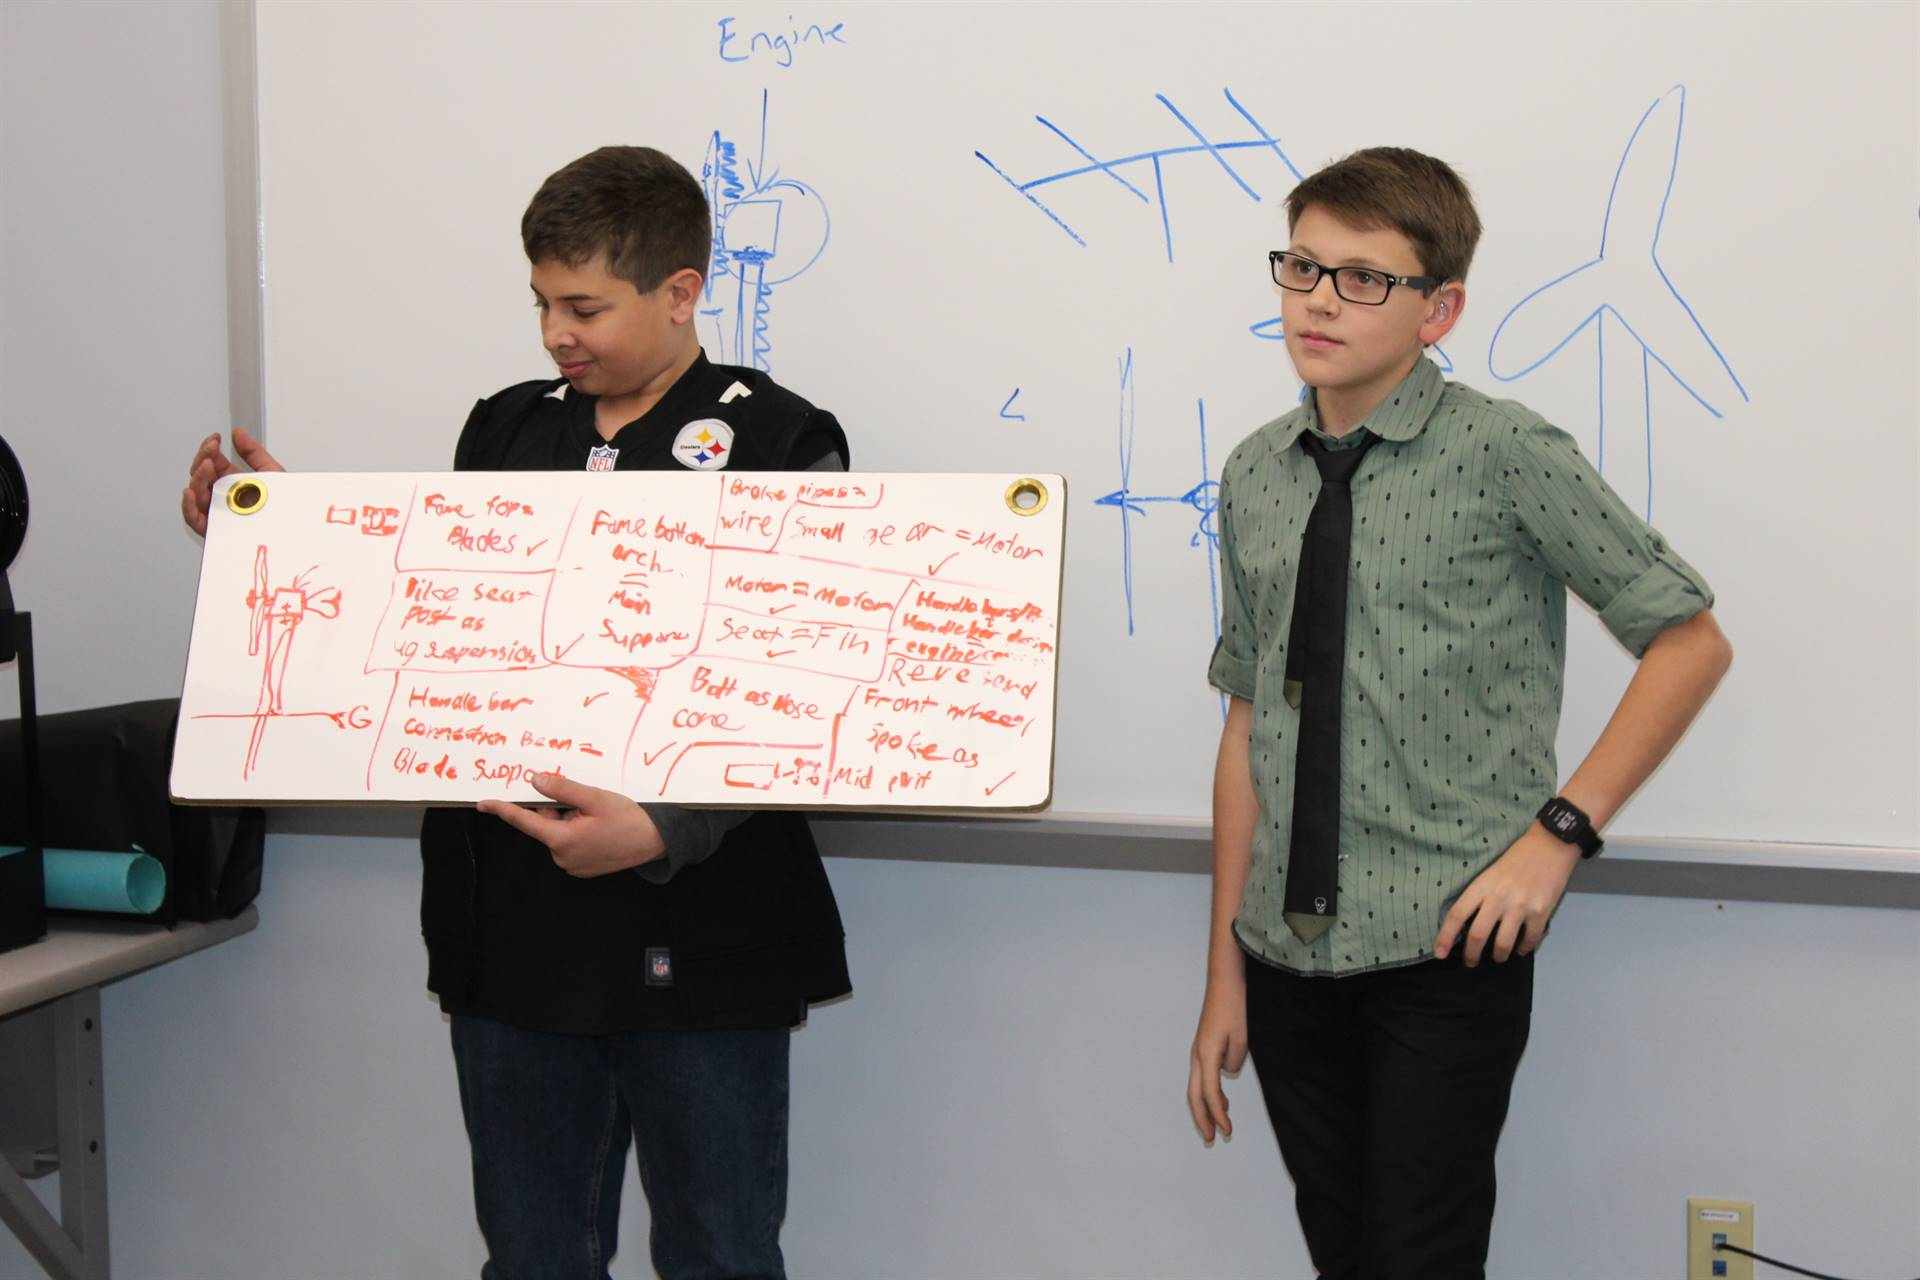 Students share their ideas